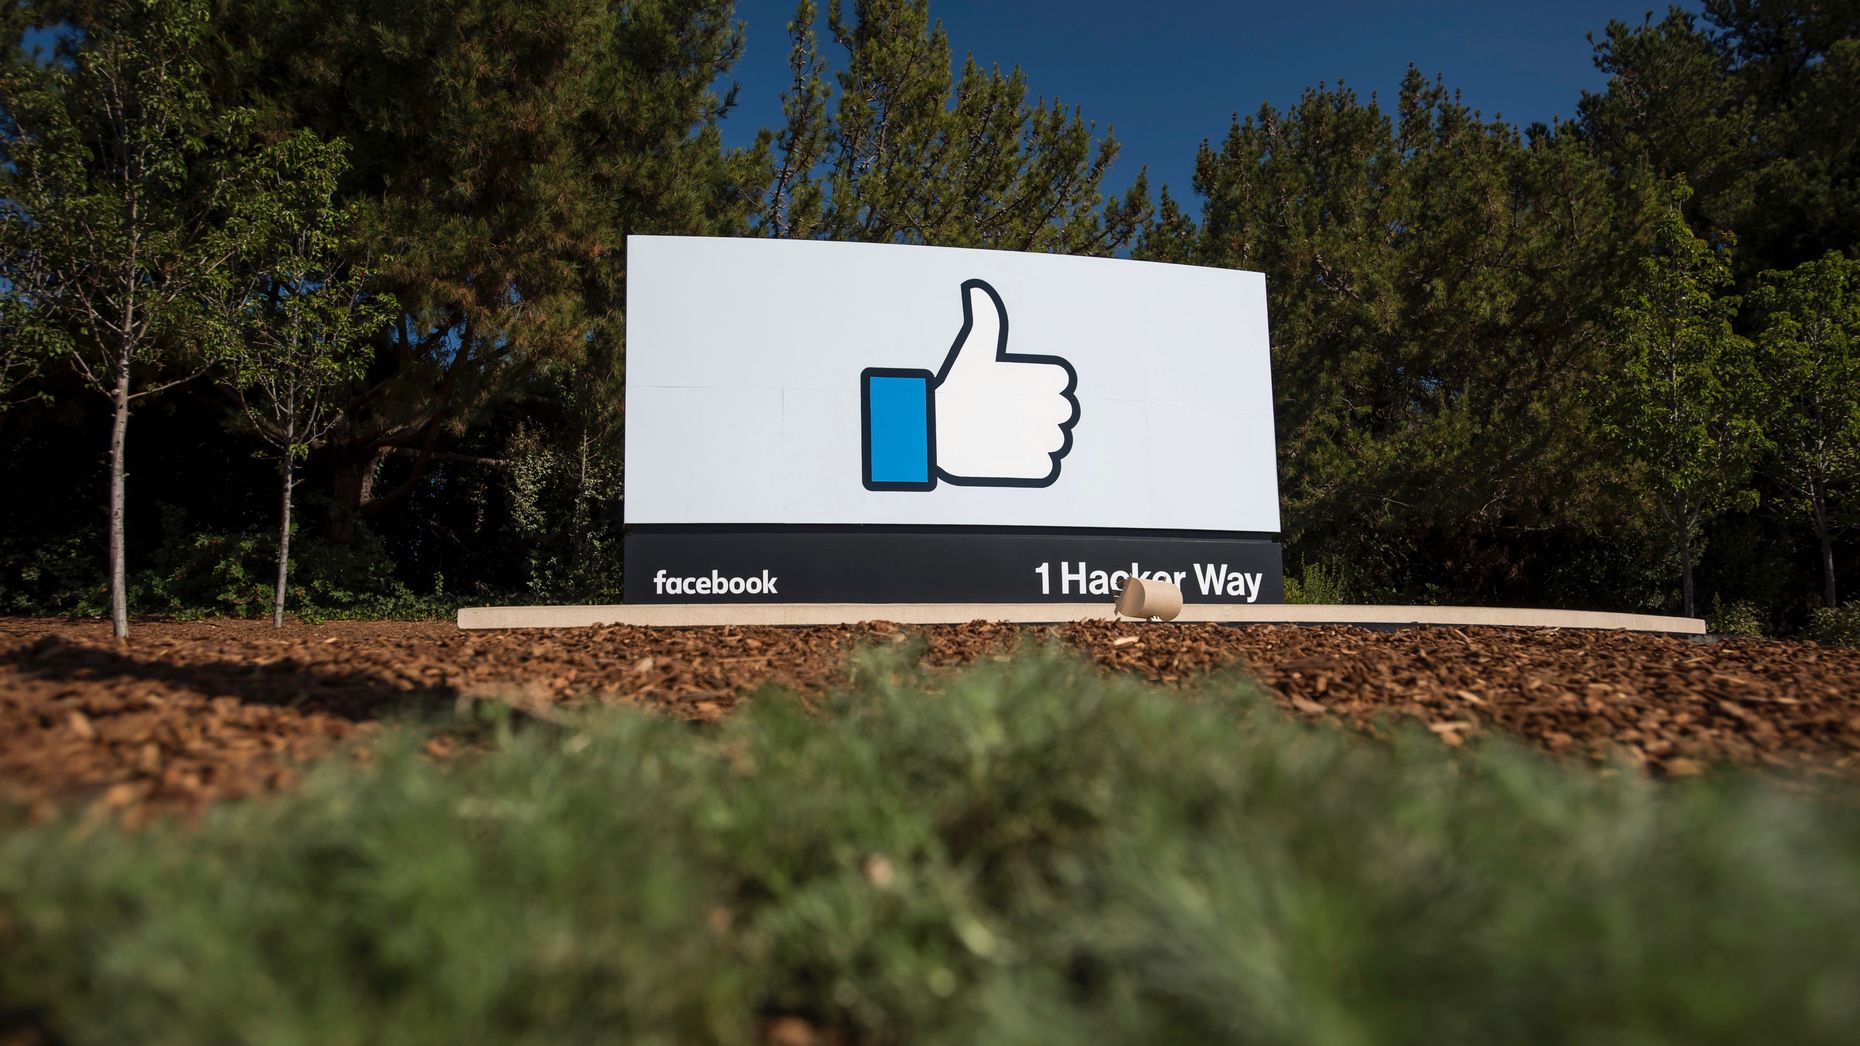 Facebook's campus in Silicon Valley. Photo by Bloomberg